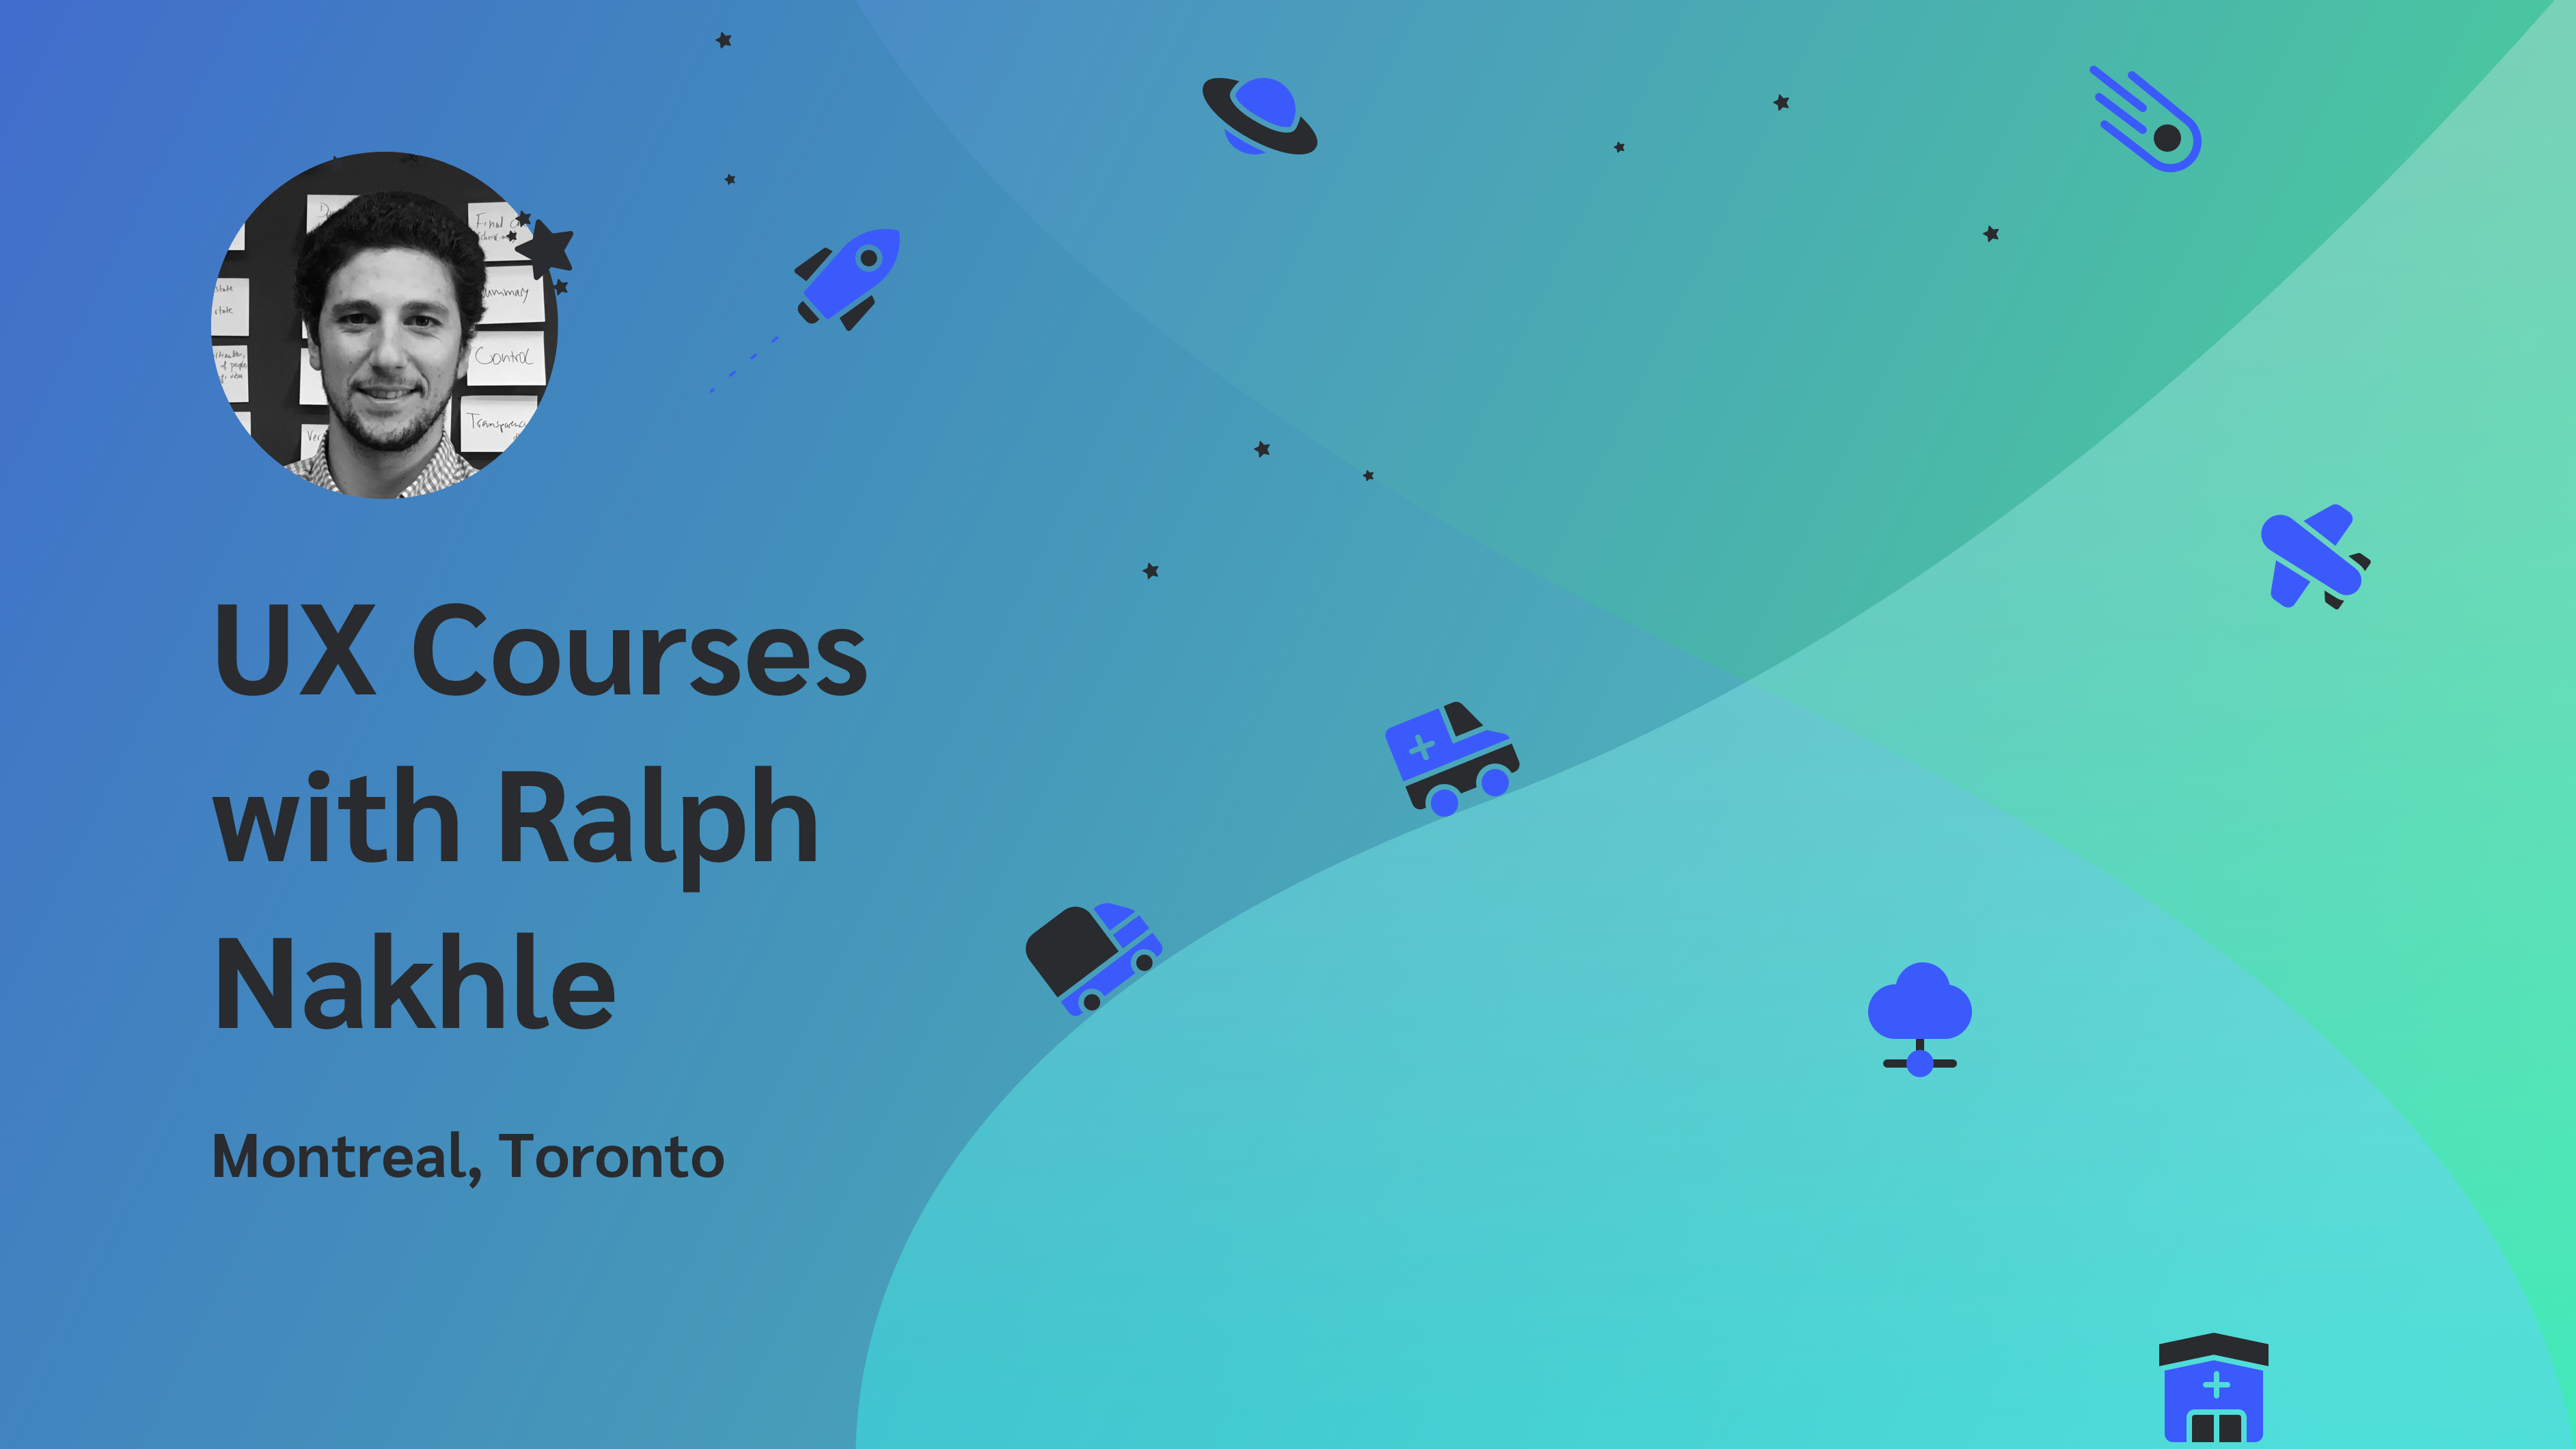 UX Courses with Ralph Nakhle